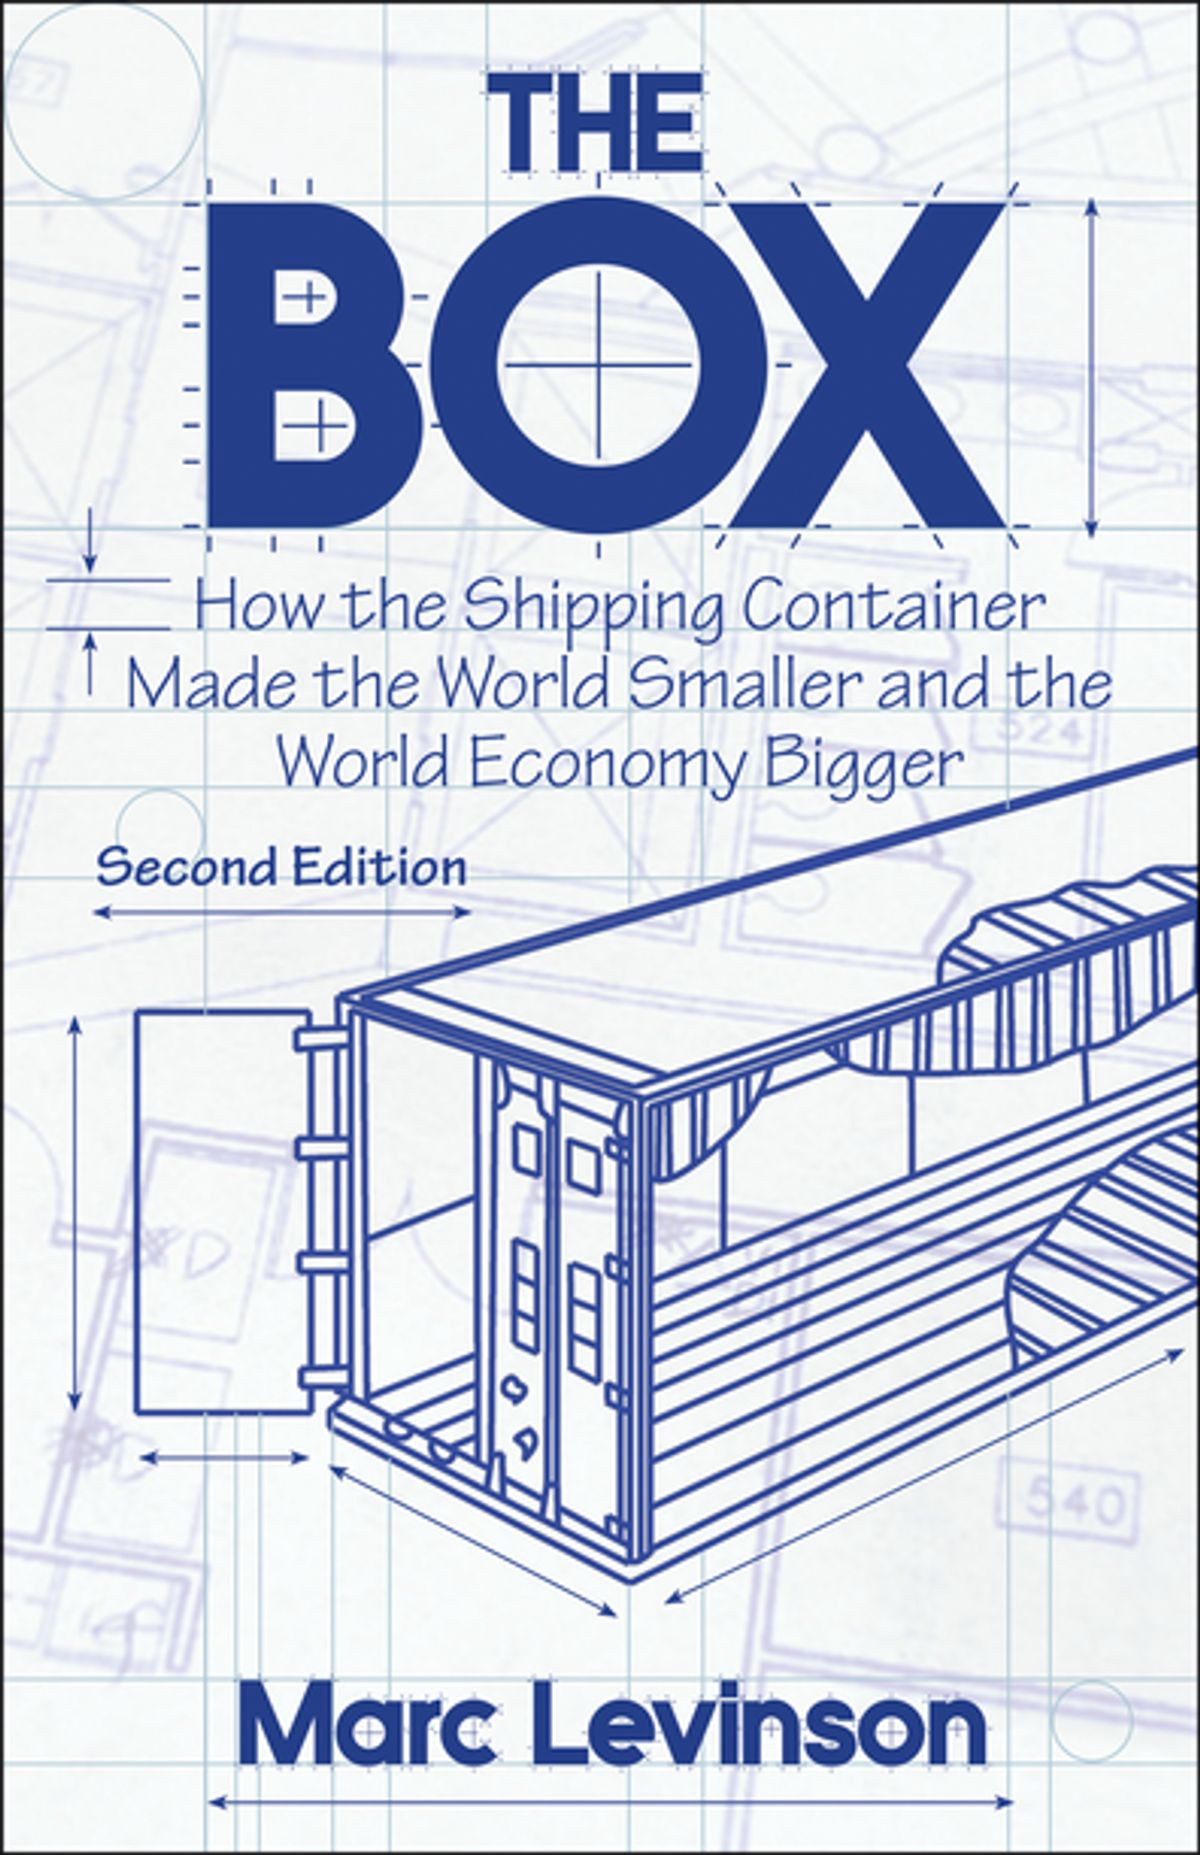 The Box: How the Shipping Container Made the World Smaller and the World Economy Bigger, Second edition by Marc Levinson, ISBN: 9781400880751